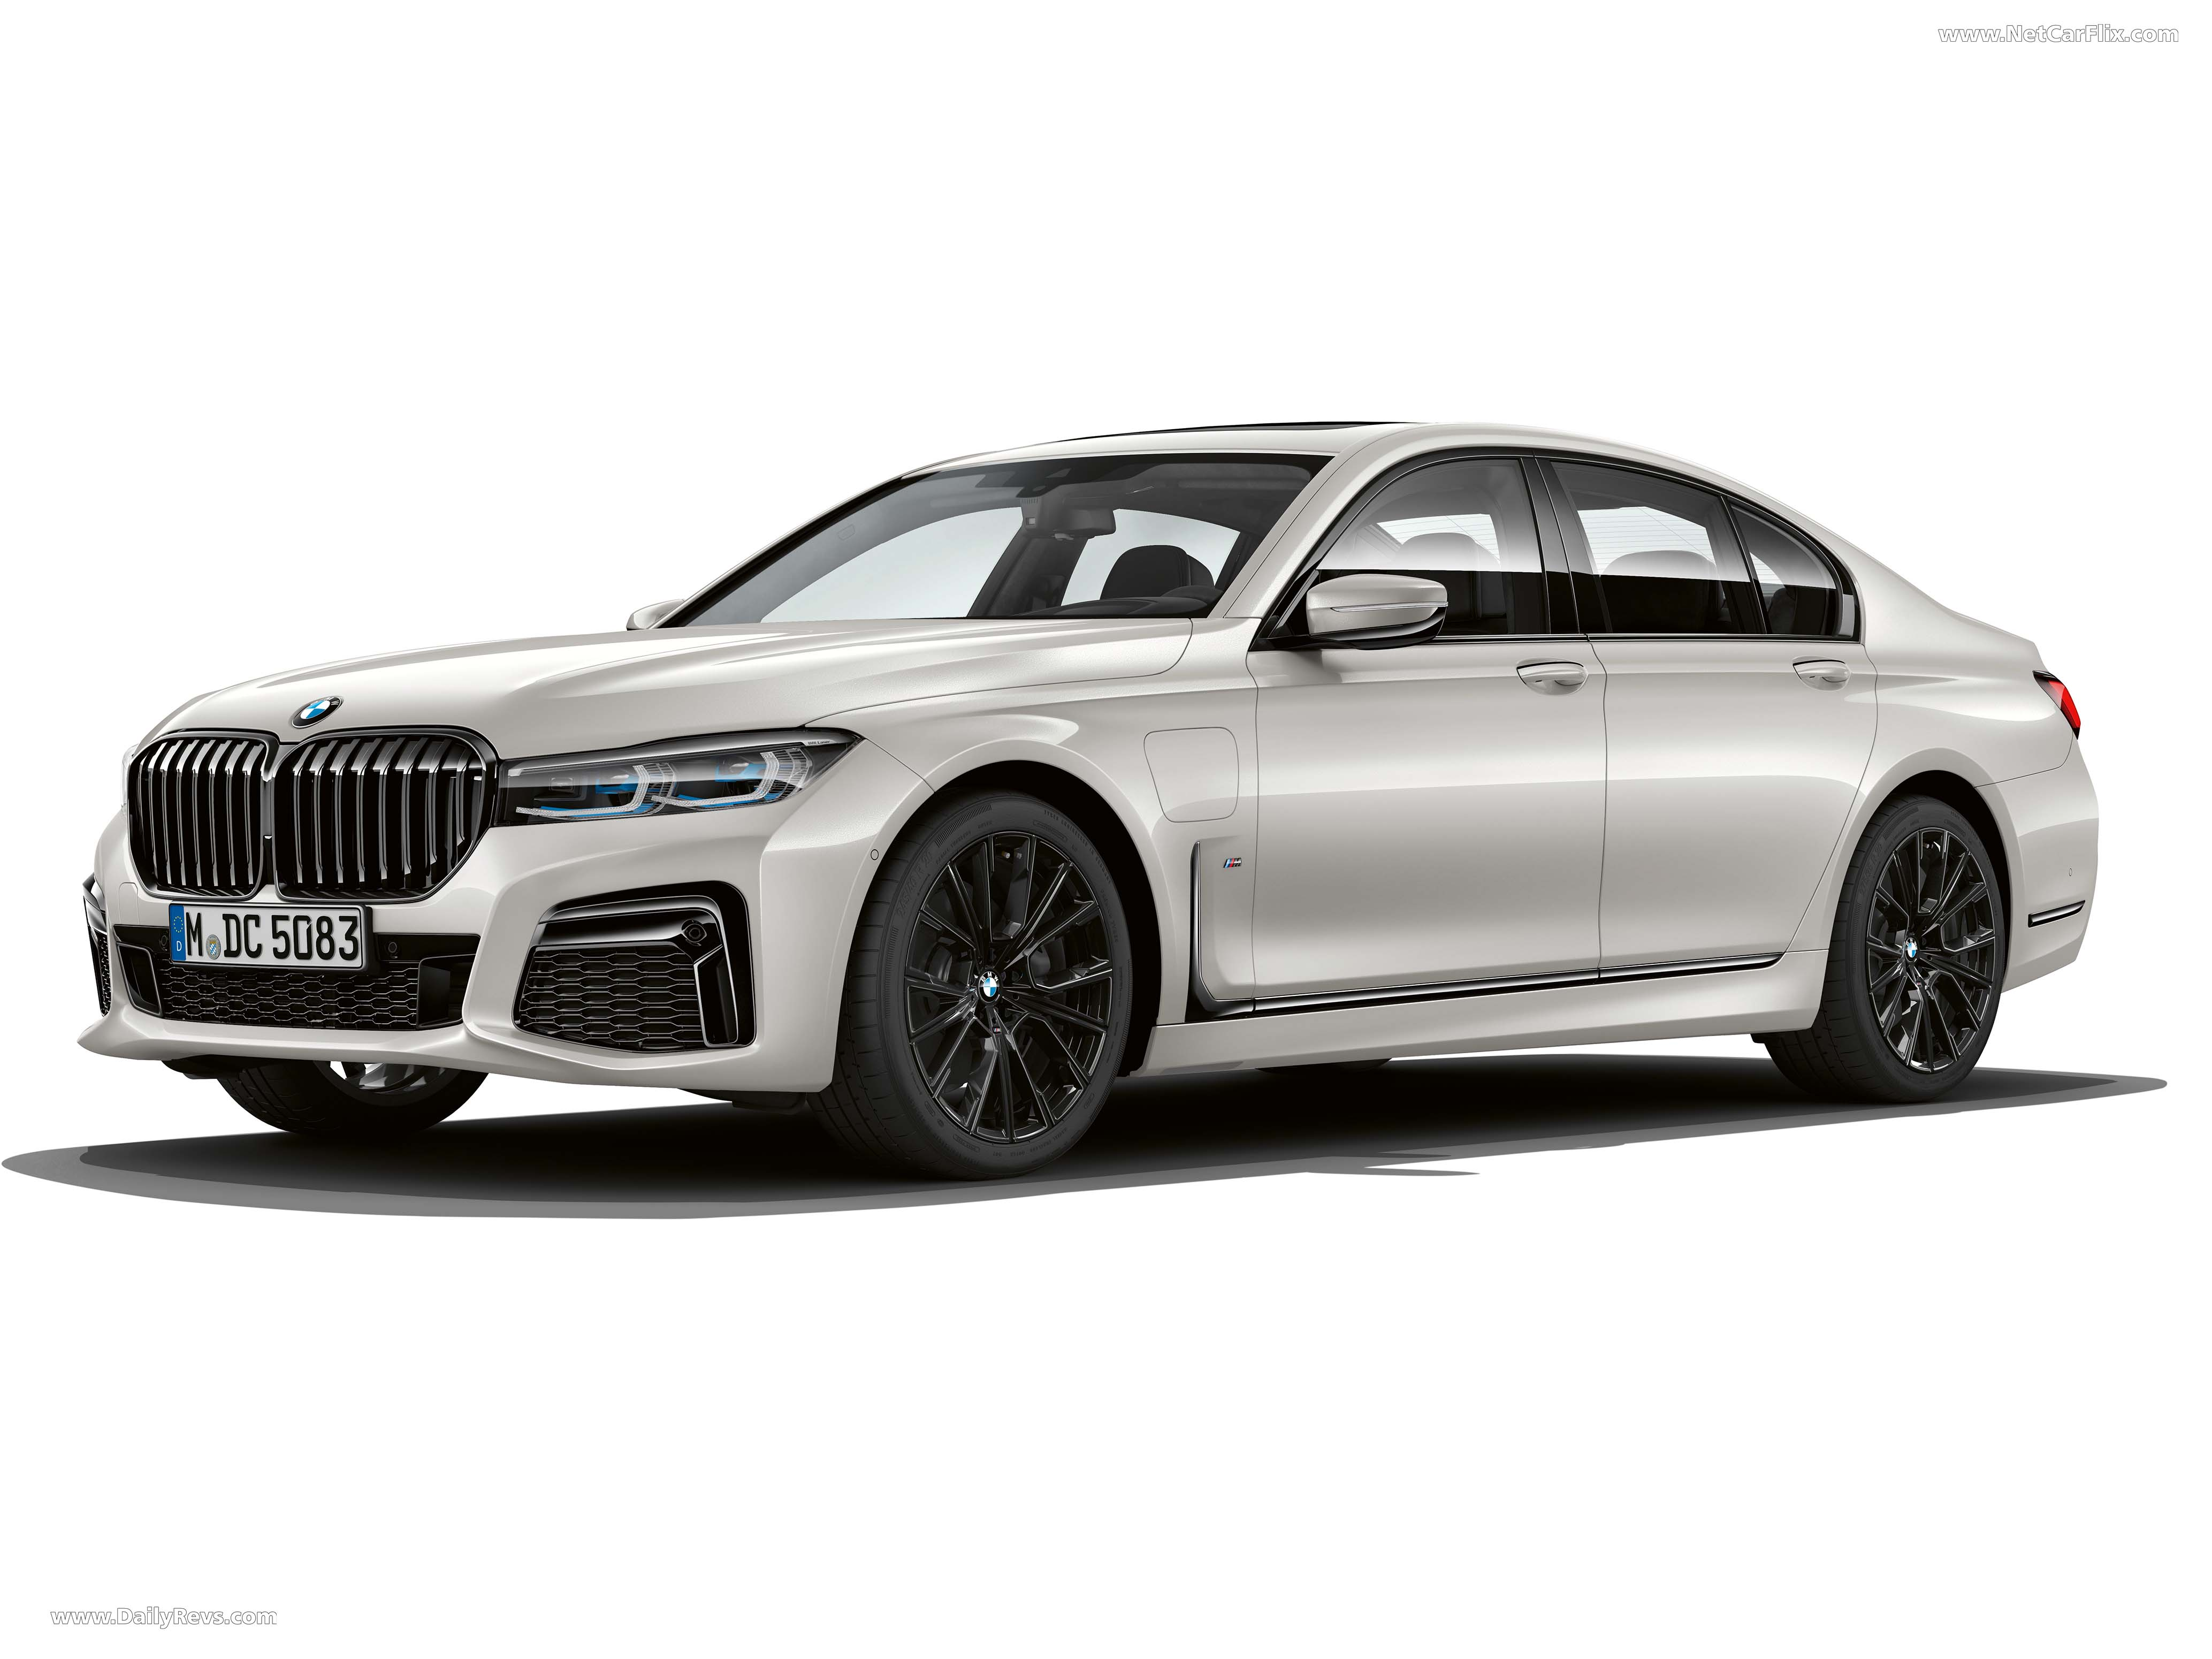 2020 BMW 7-Series Plug-In Hybrid - Dailyrevs